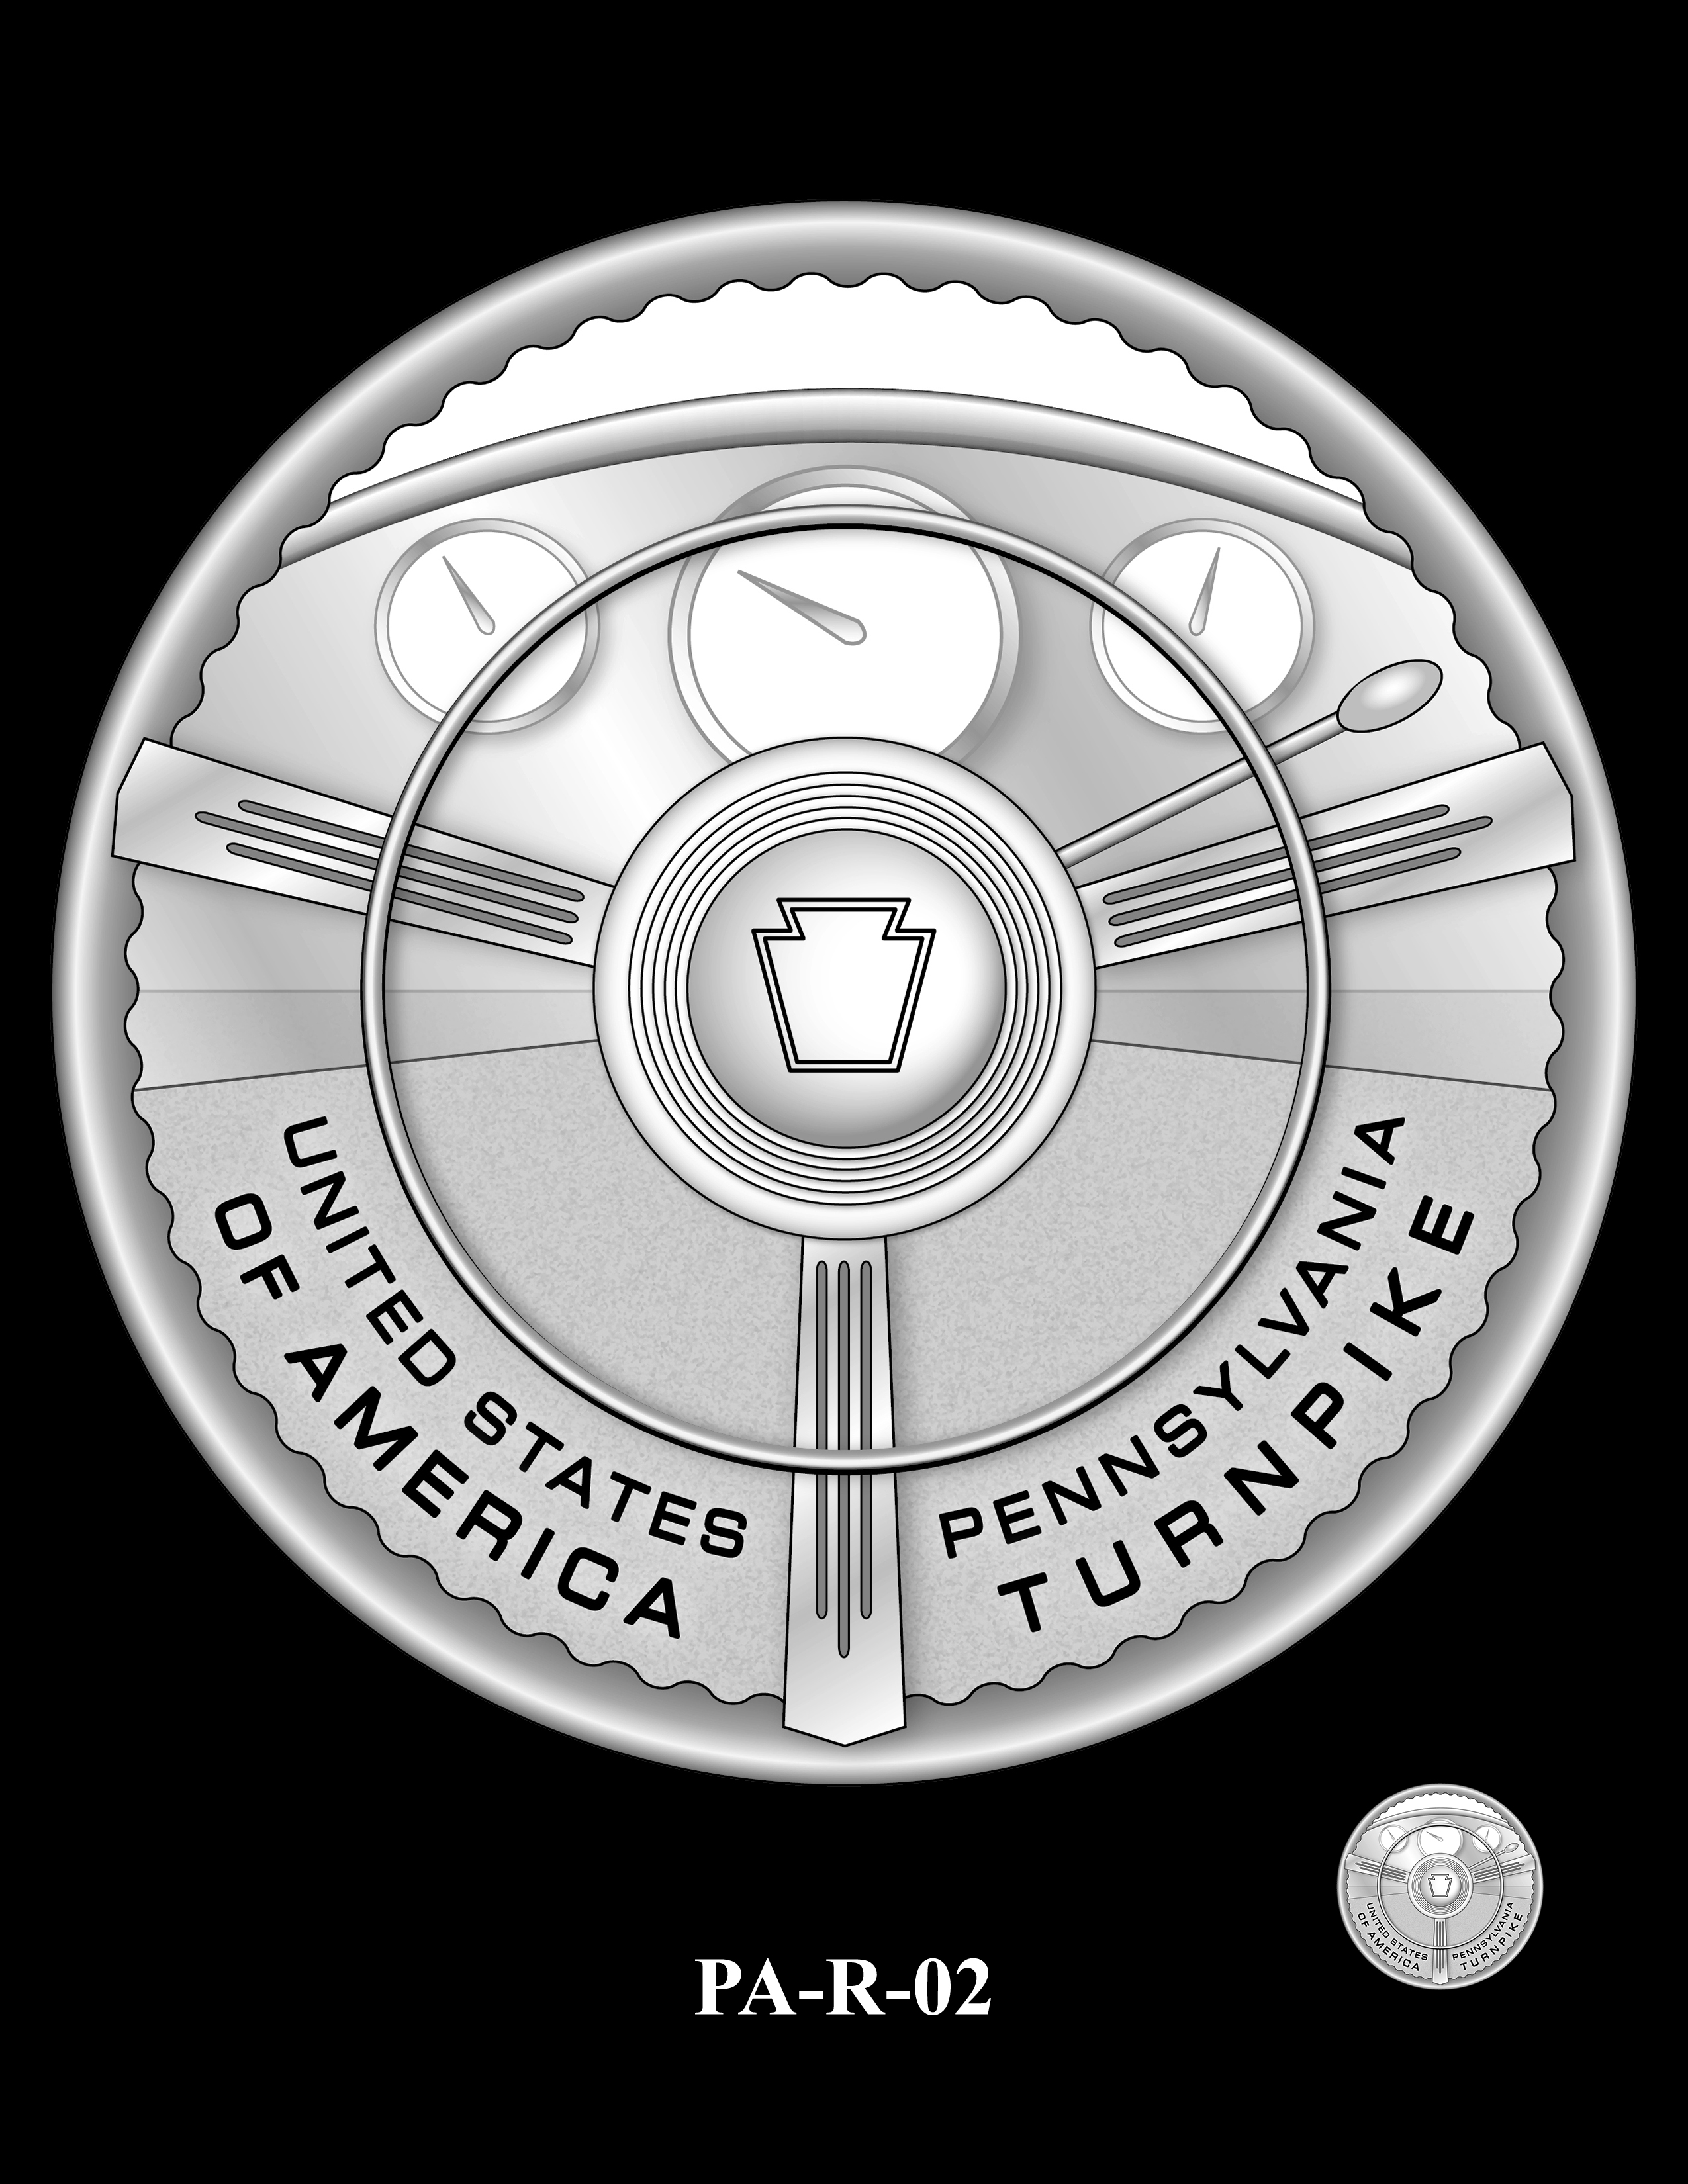 PA-R-02 -- 2019 American Innovation $1 Coin Program